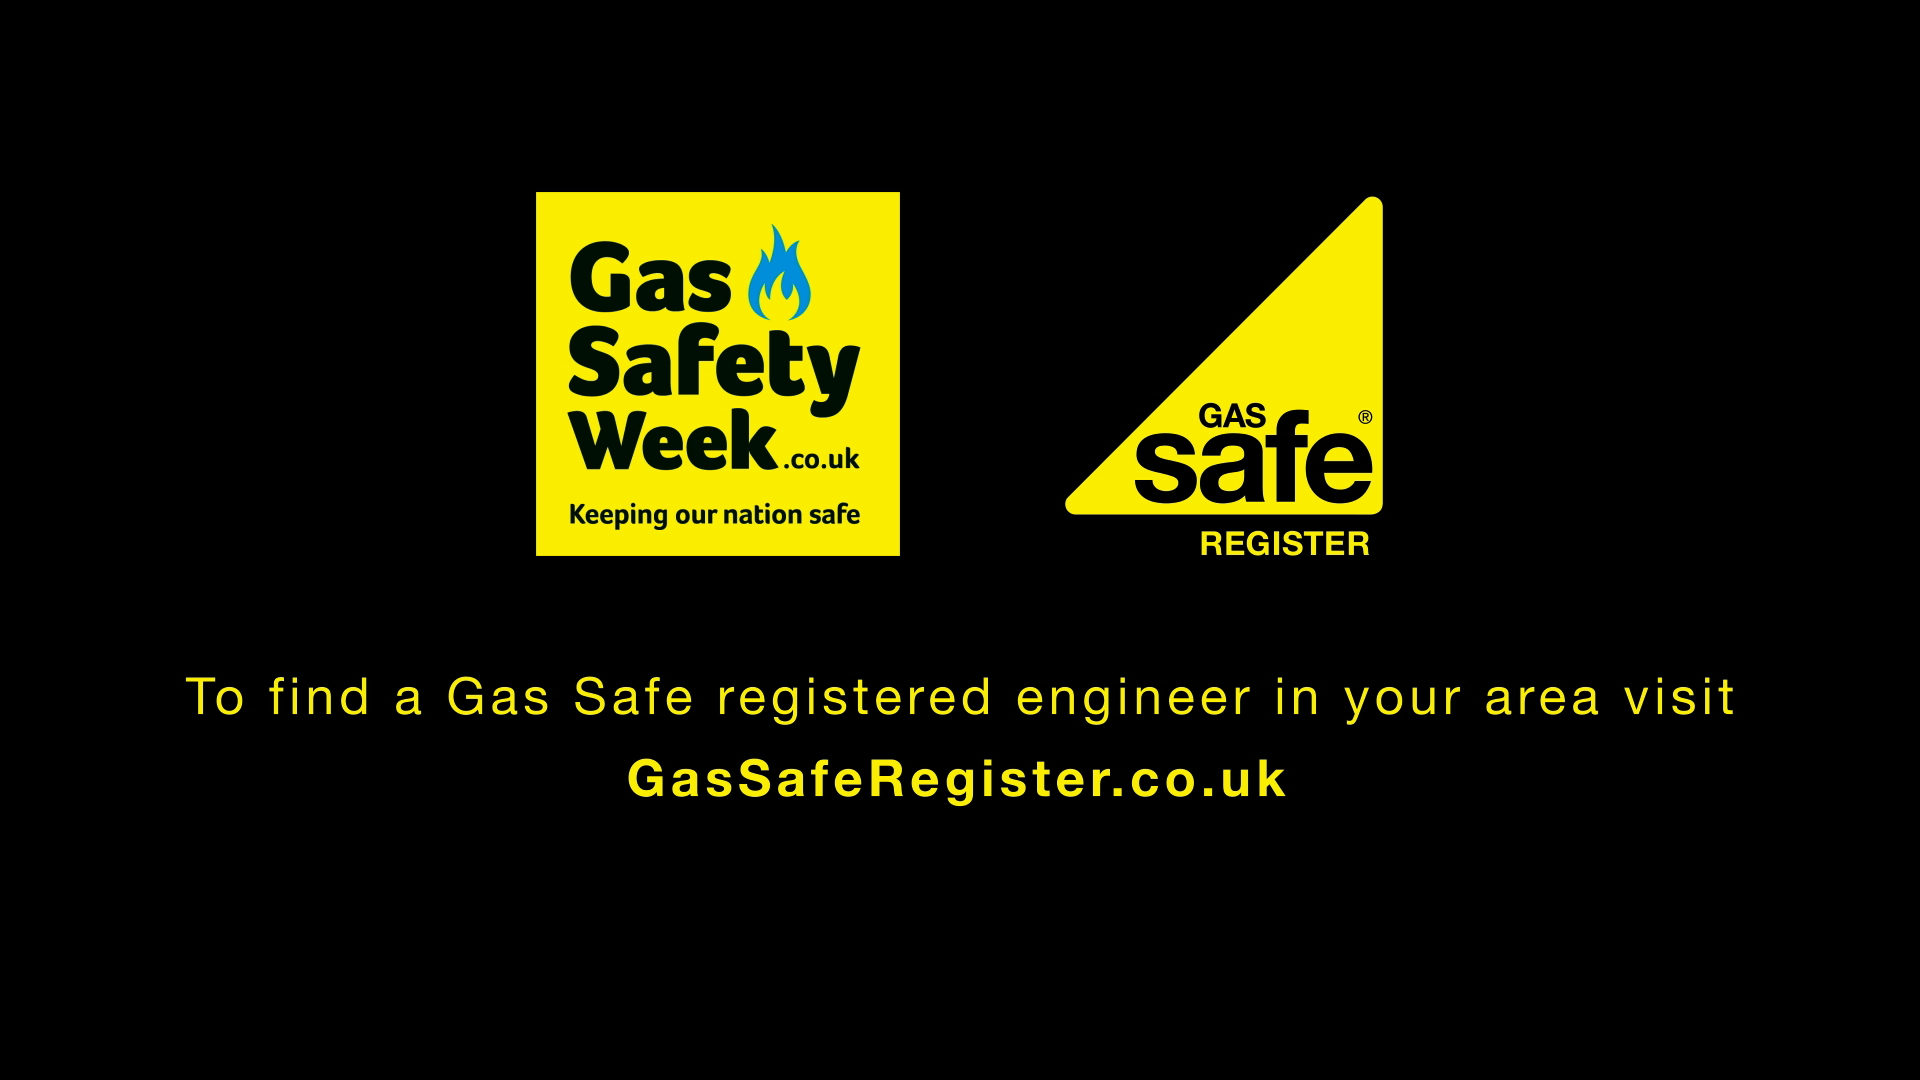 Gas safety | Social Media Campaign